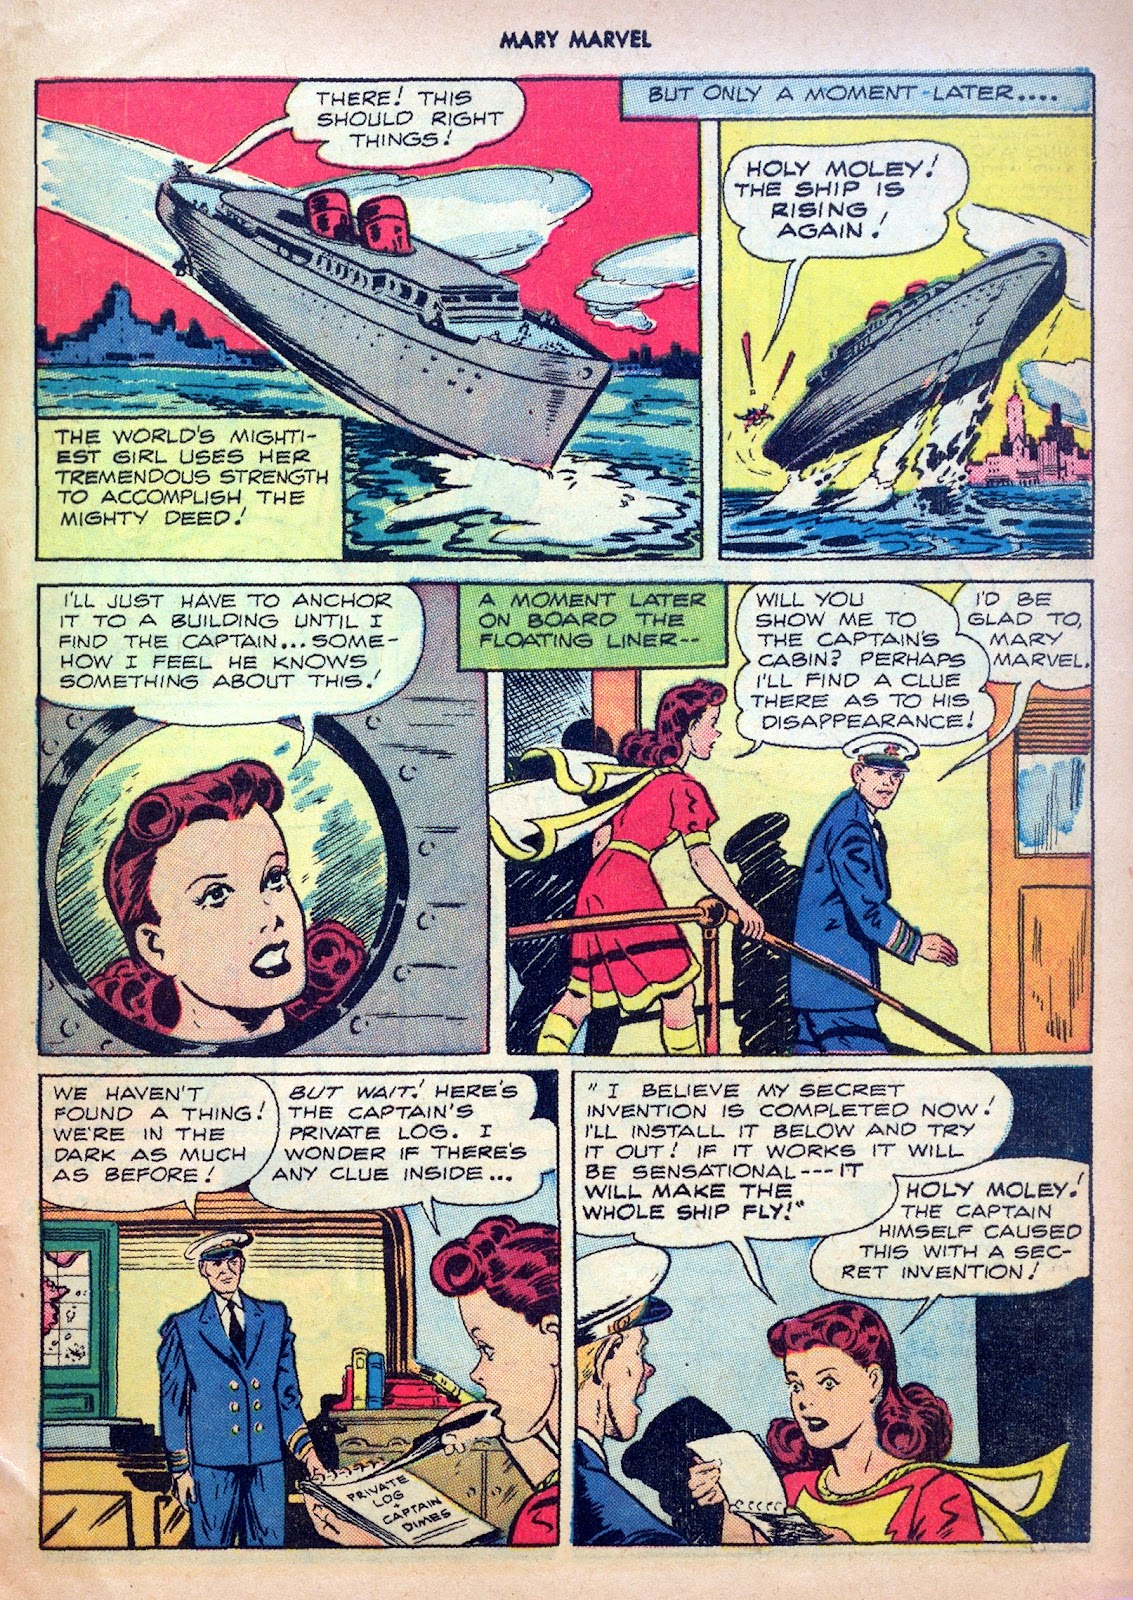 Read online Mary Marvel comic -  Issue #27 - 29